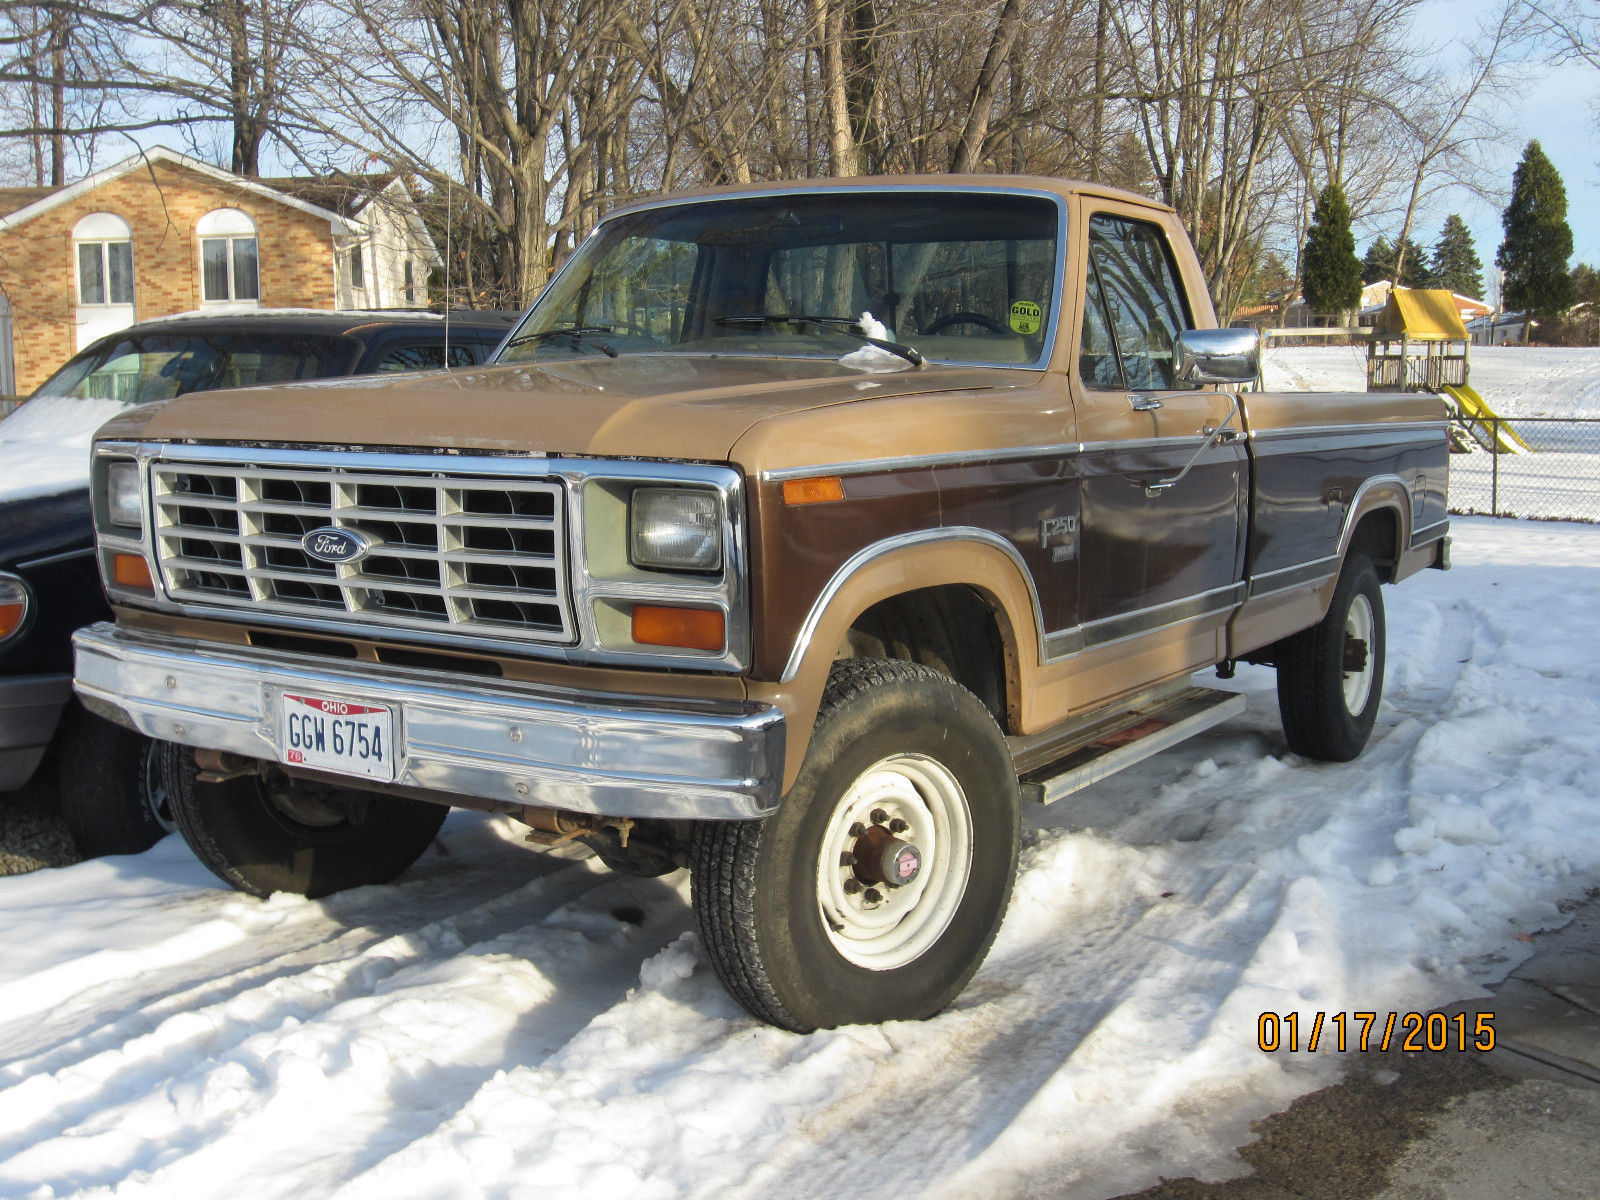 1381106 Dana 44 Front Axle Problems further RepairGuideContent in addition 1365351 Installing C6 Rebuilt Transmission Crossmember Problems likewise 14 in addition Front suspension. on 1986 ford f 250 2wd